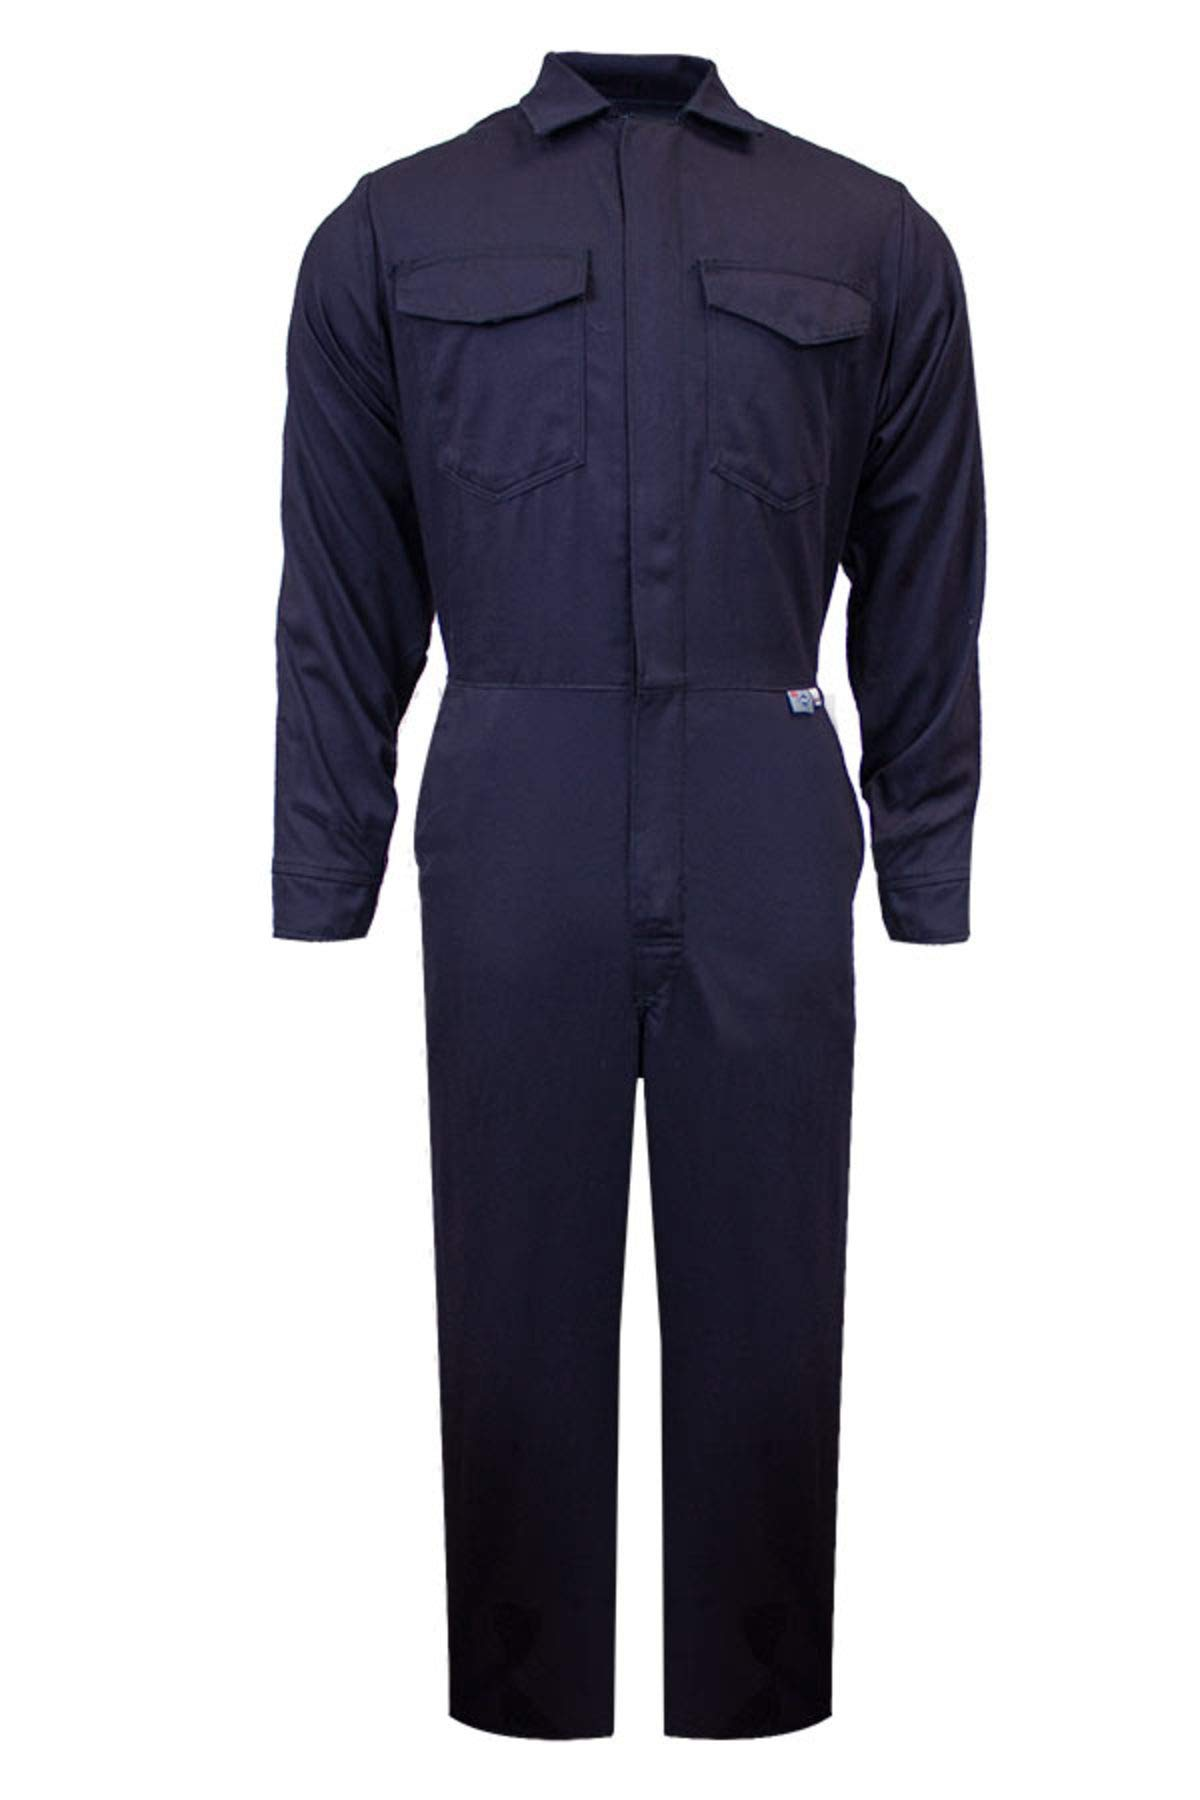 National Safety Apparel C88UPXL30 ArcGuard UltraSoft Arc Flash Coverall, X-Large, Navy